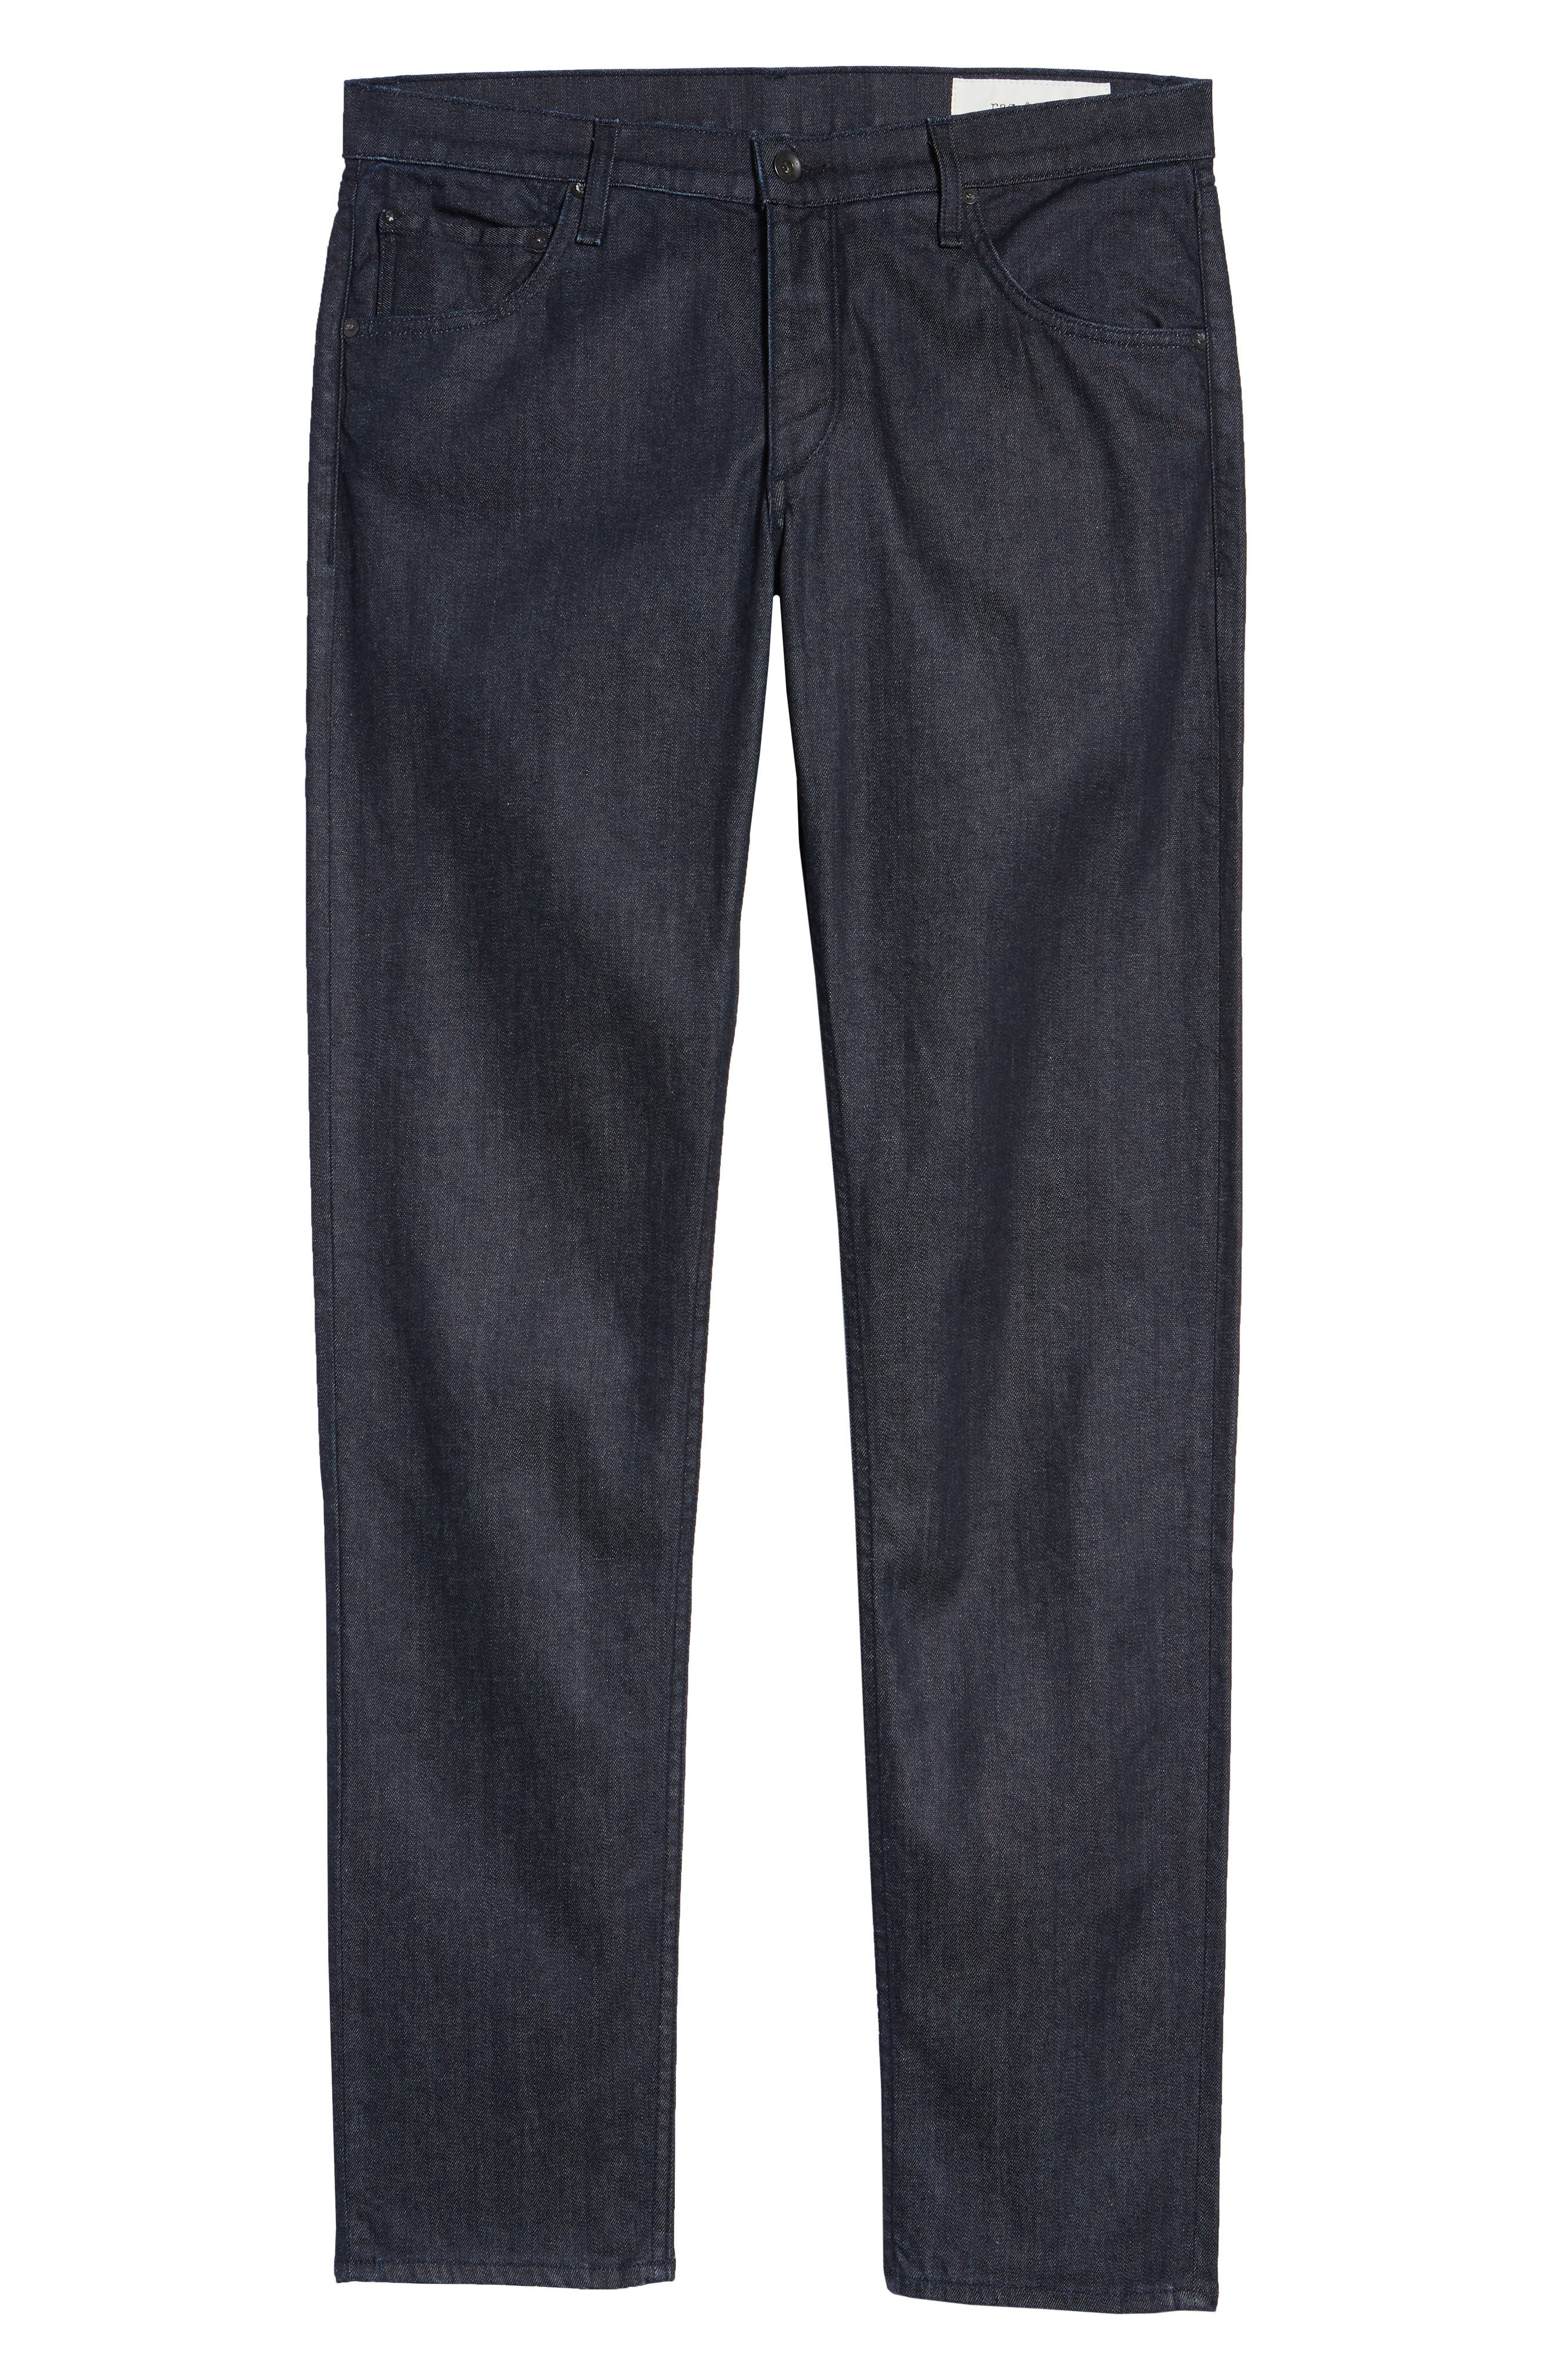 Standard Issue Fit 2 Slim Fit Jeans,                             Alternate thumbnail 2, color,                             TONAL RINSE